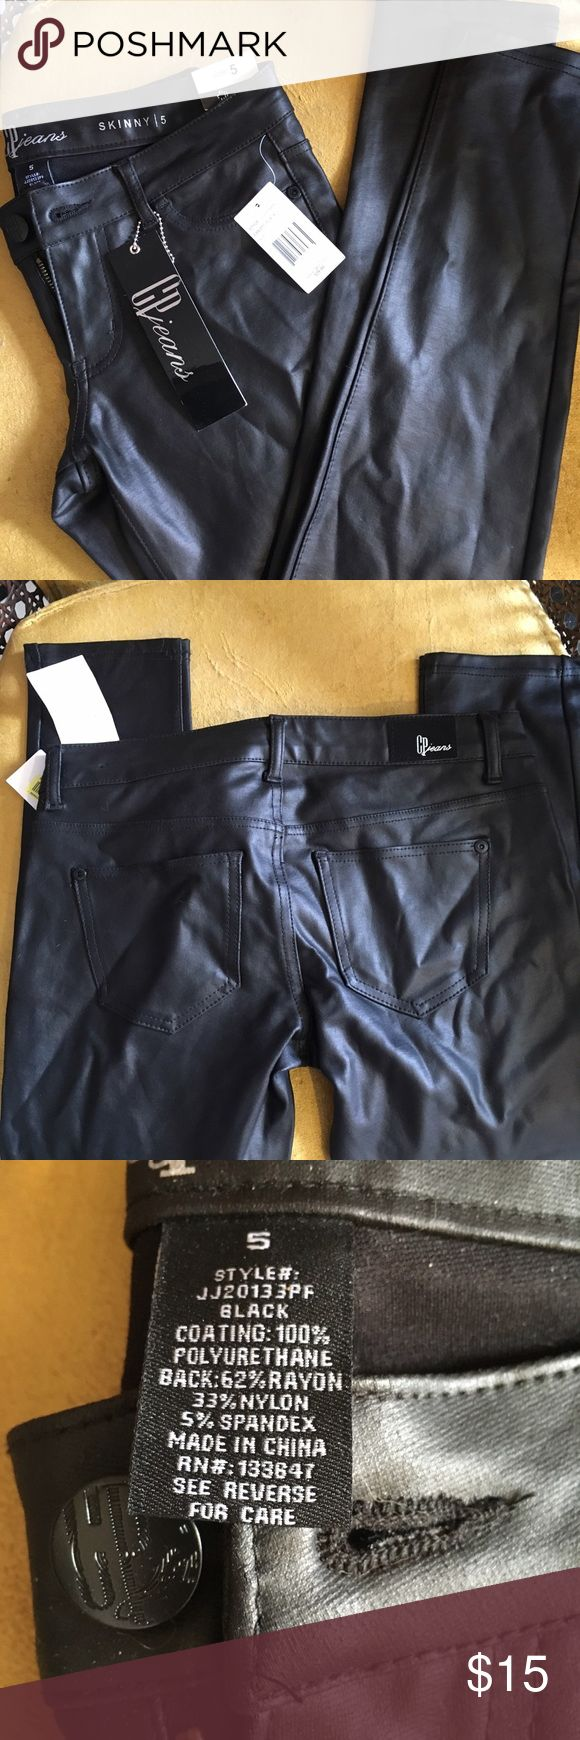 Black Faux Leather Skinny Jeans Black Faux Leather Low Rise Skinny Jeans, Size 5 (I'm 26/27 and these are tight on me) New With Tags, Wrinkled From Being In My Closet. Ask for measurements.  *Comes from a pet friendly home* Celebrity Pink Pants Skinny